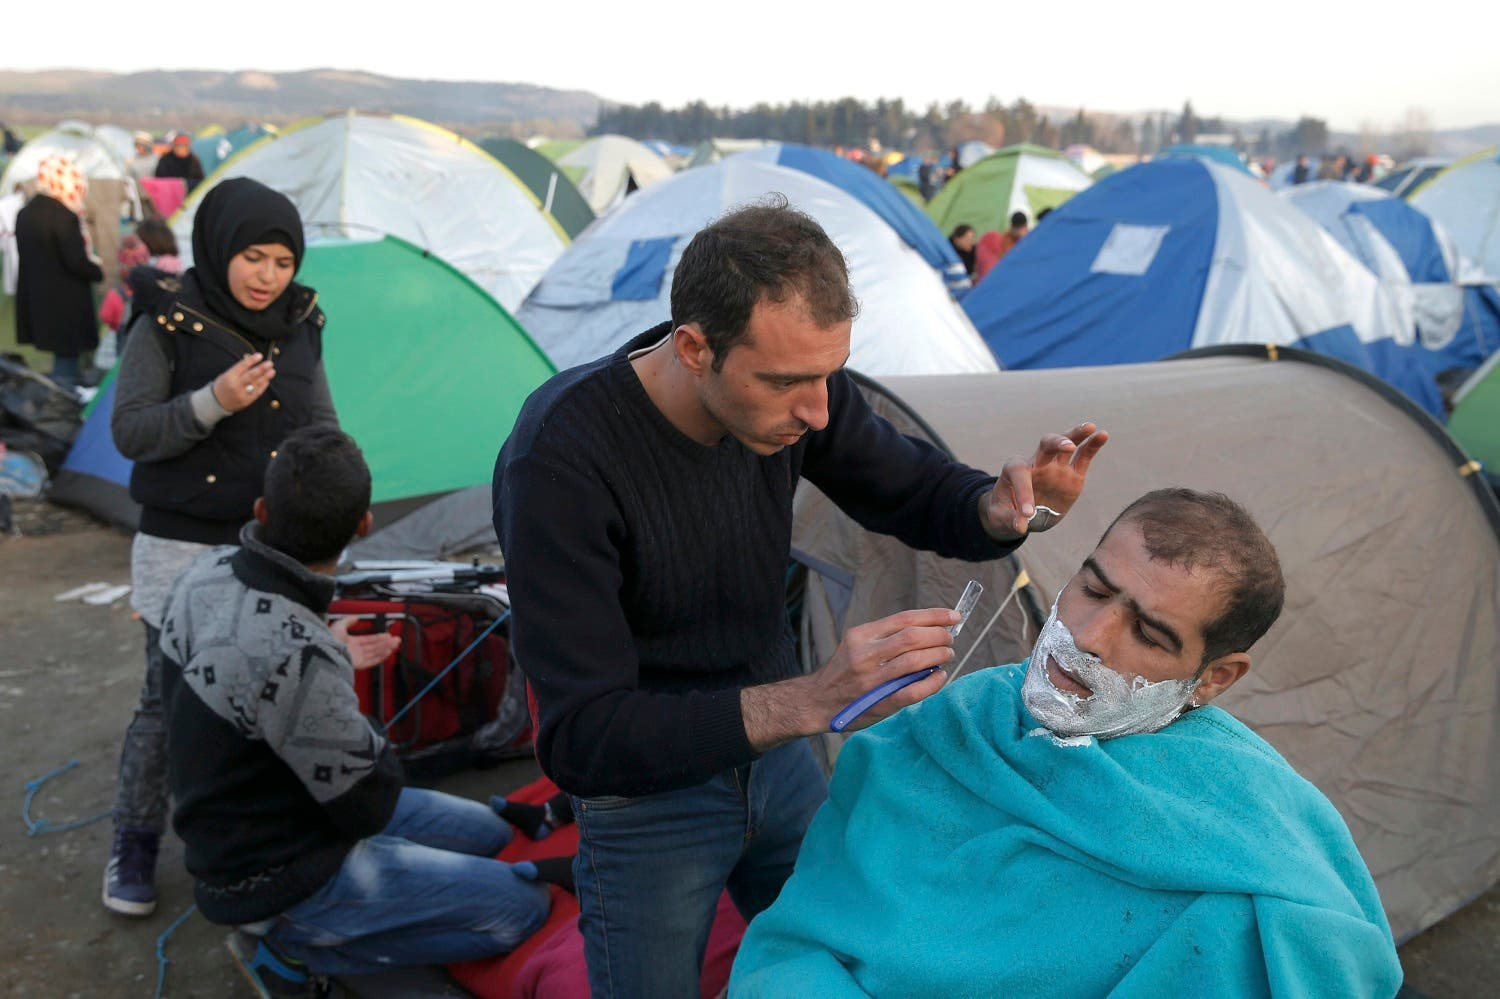 A migrant shaves the face of another in a makeshift camp, near the Greek village of Idomeni March 2, 2016. Reuters